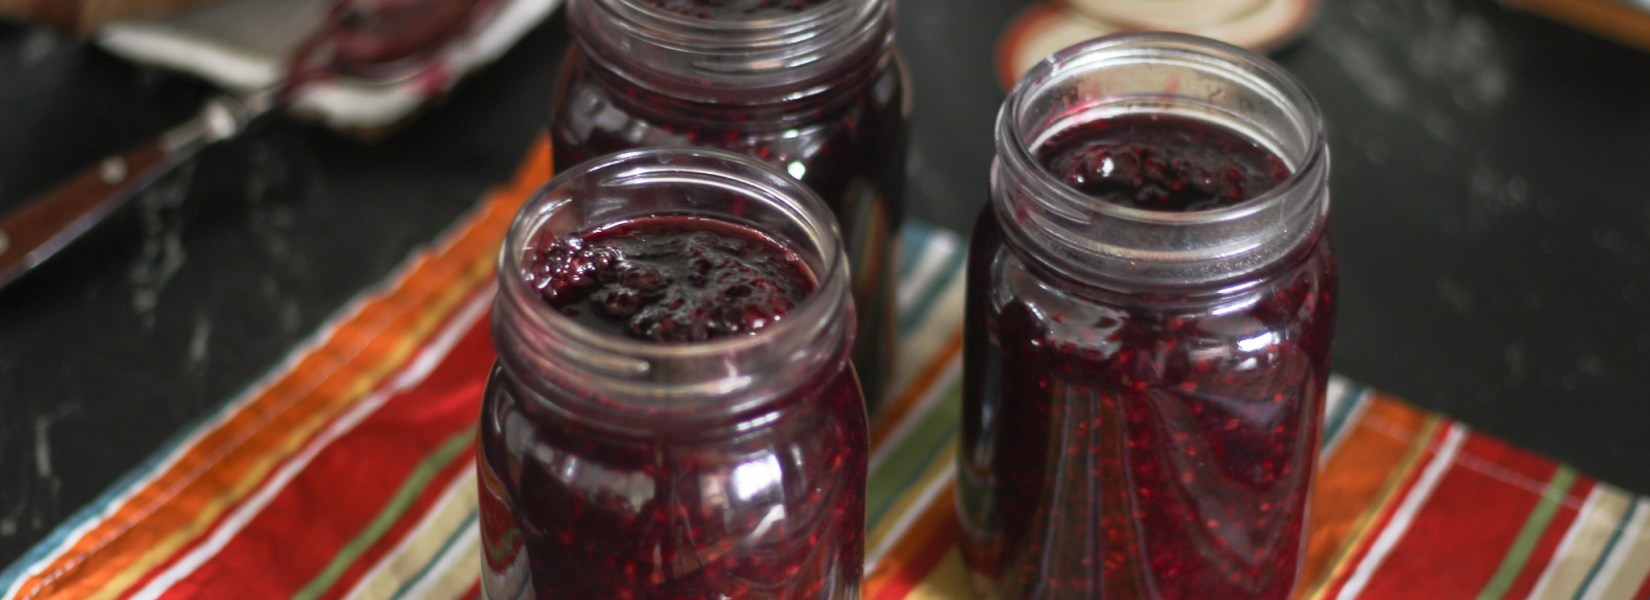 Naturally Sweetened Maple Blackberry Jam